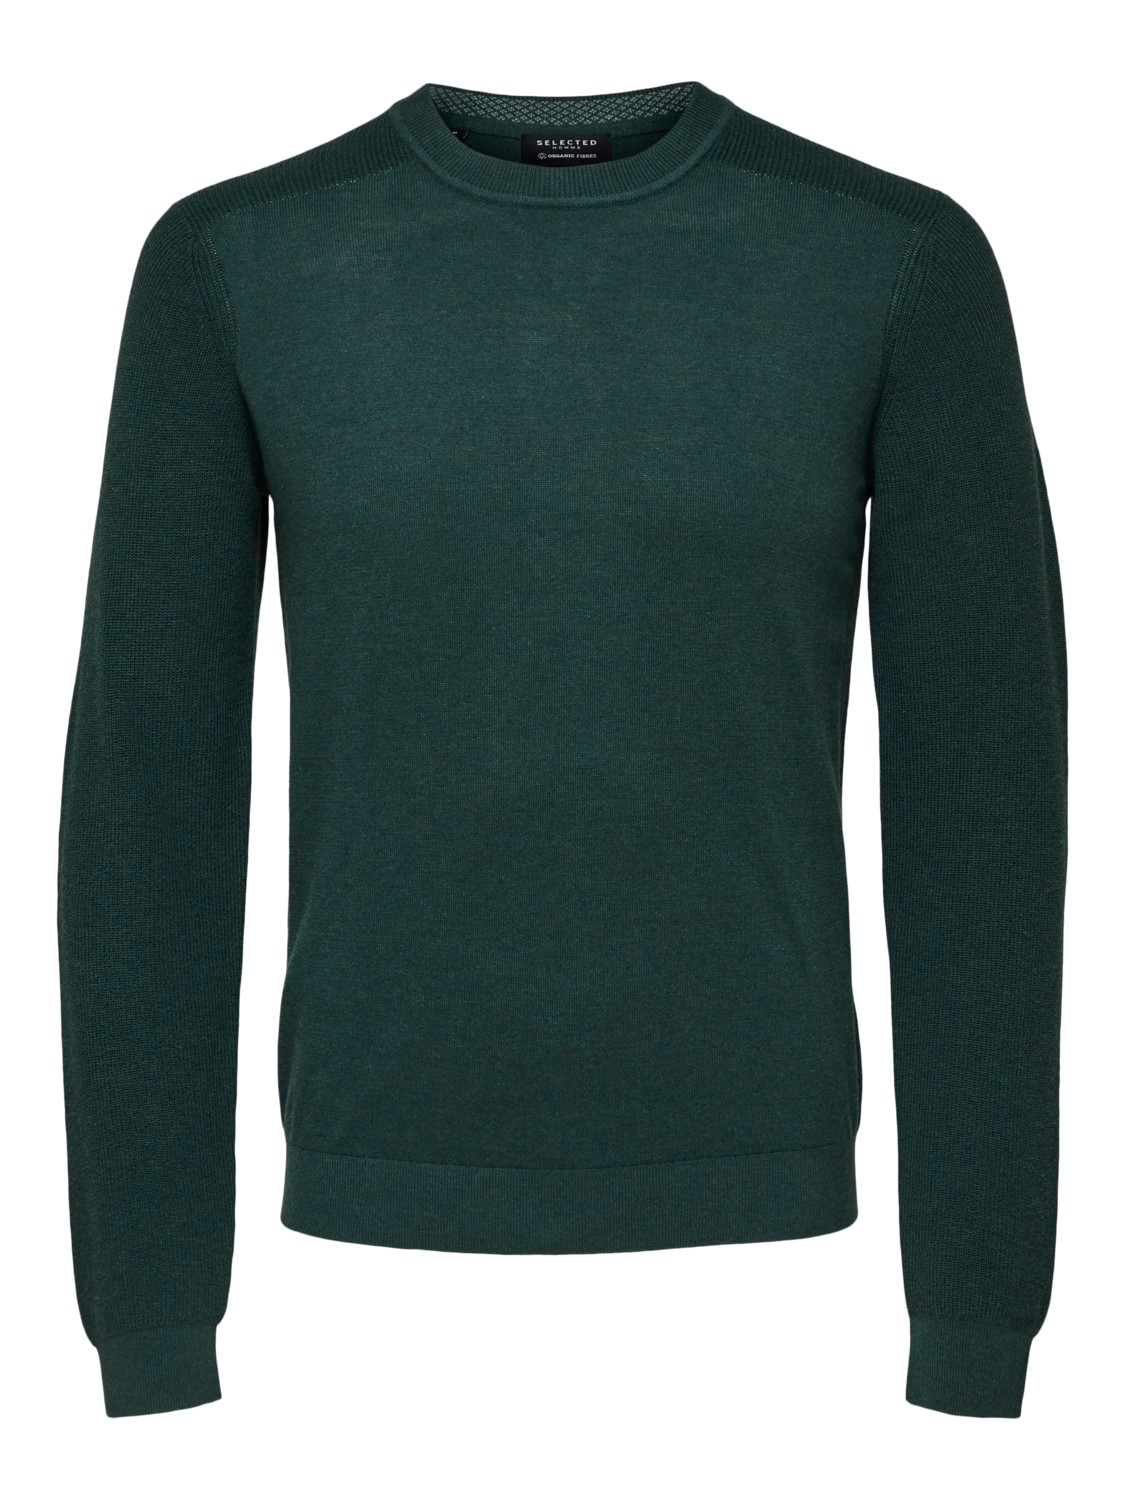 Selected - Slhallen crew neck camp darkest spruce /medium green | Gate36 Hobro